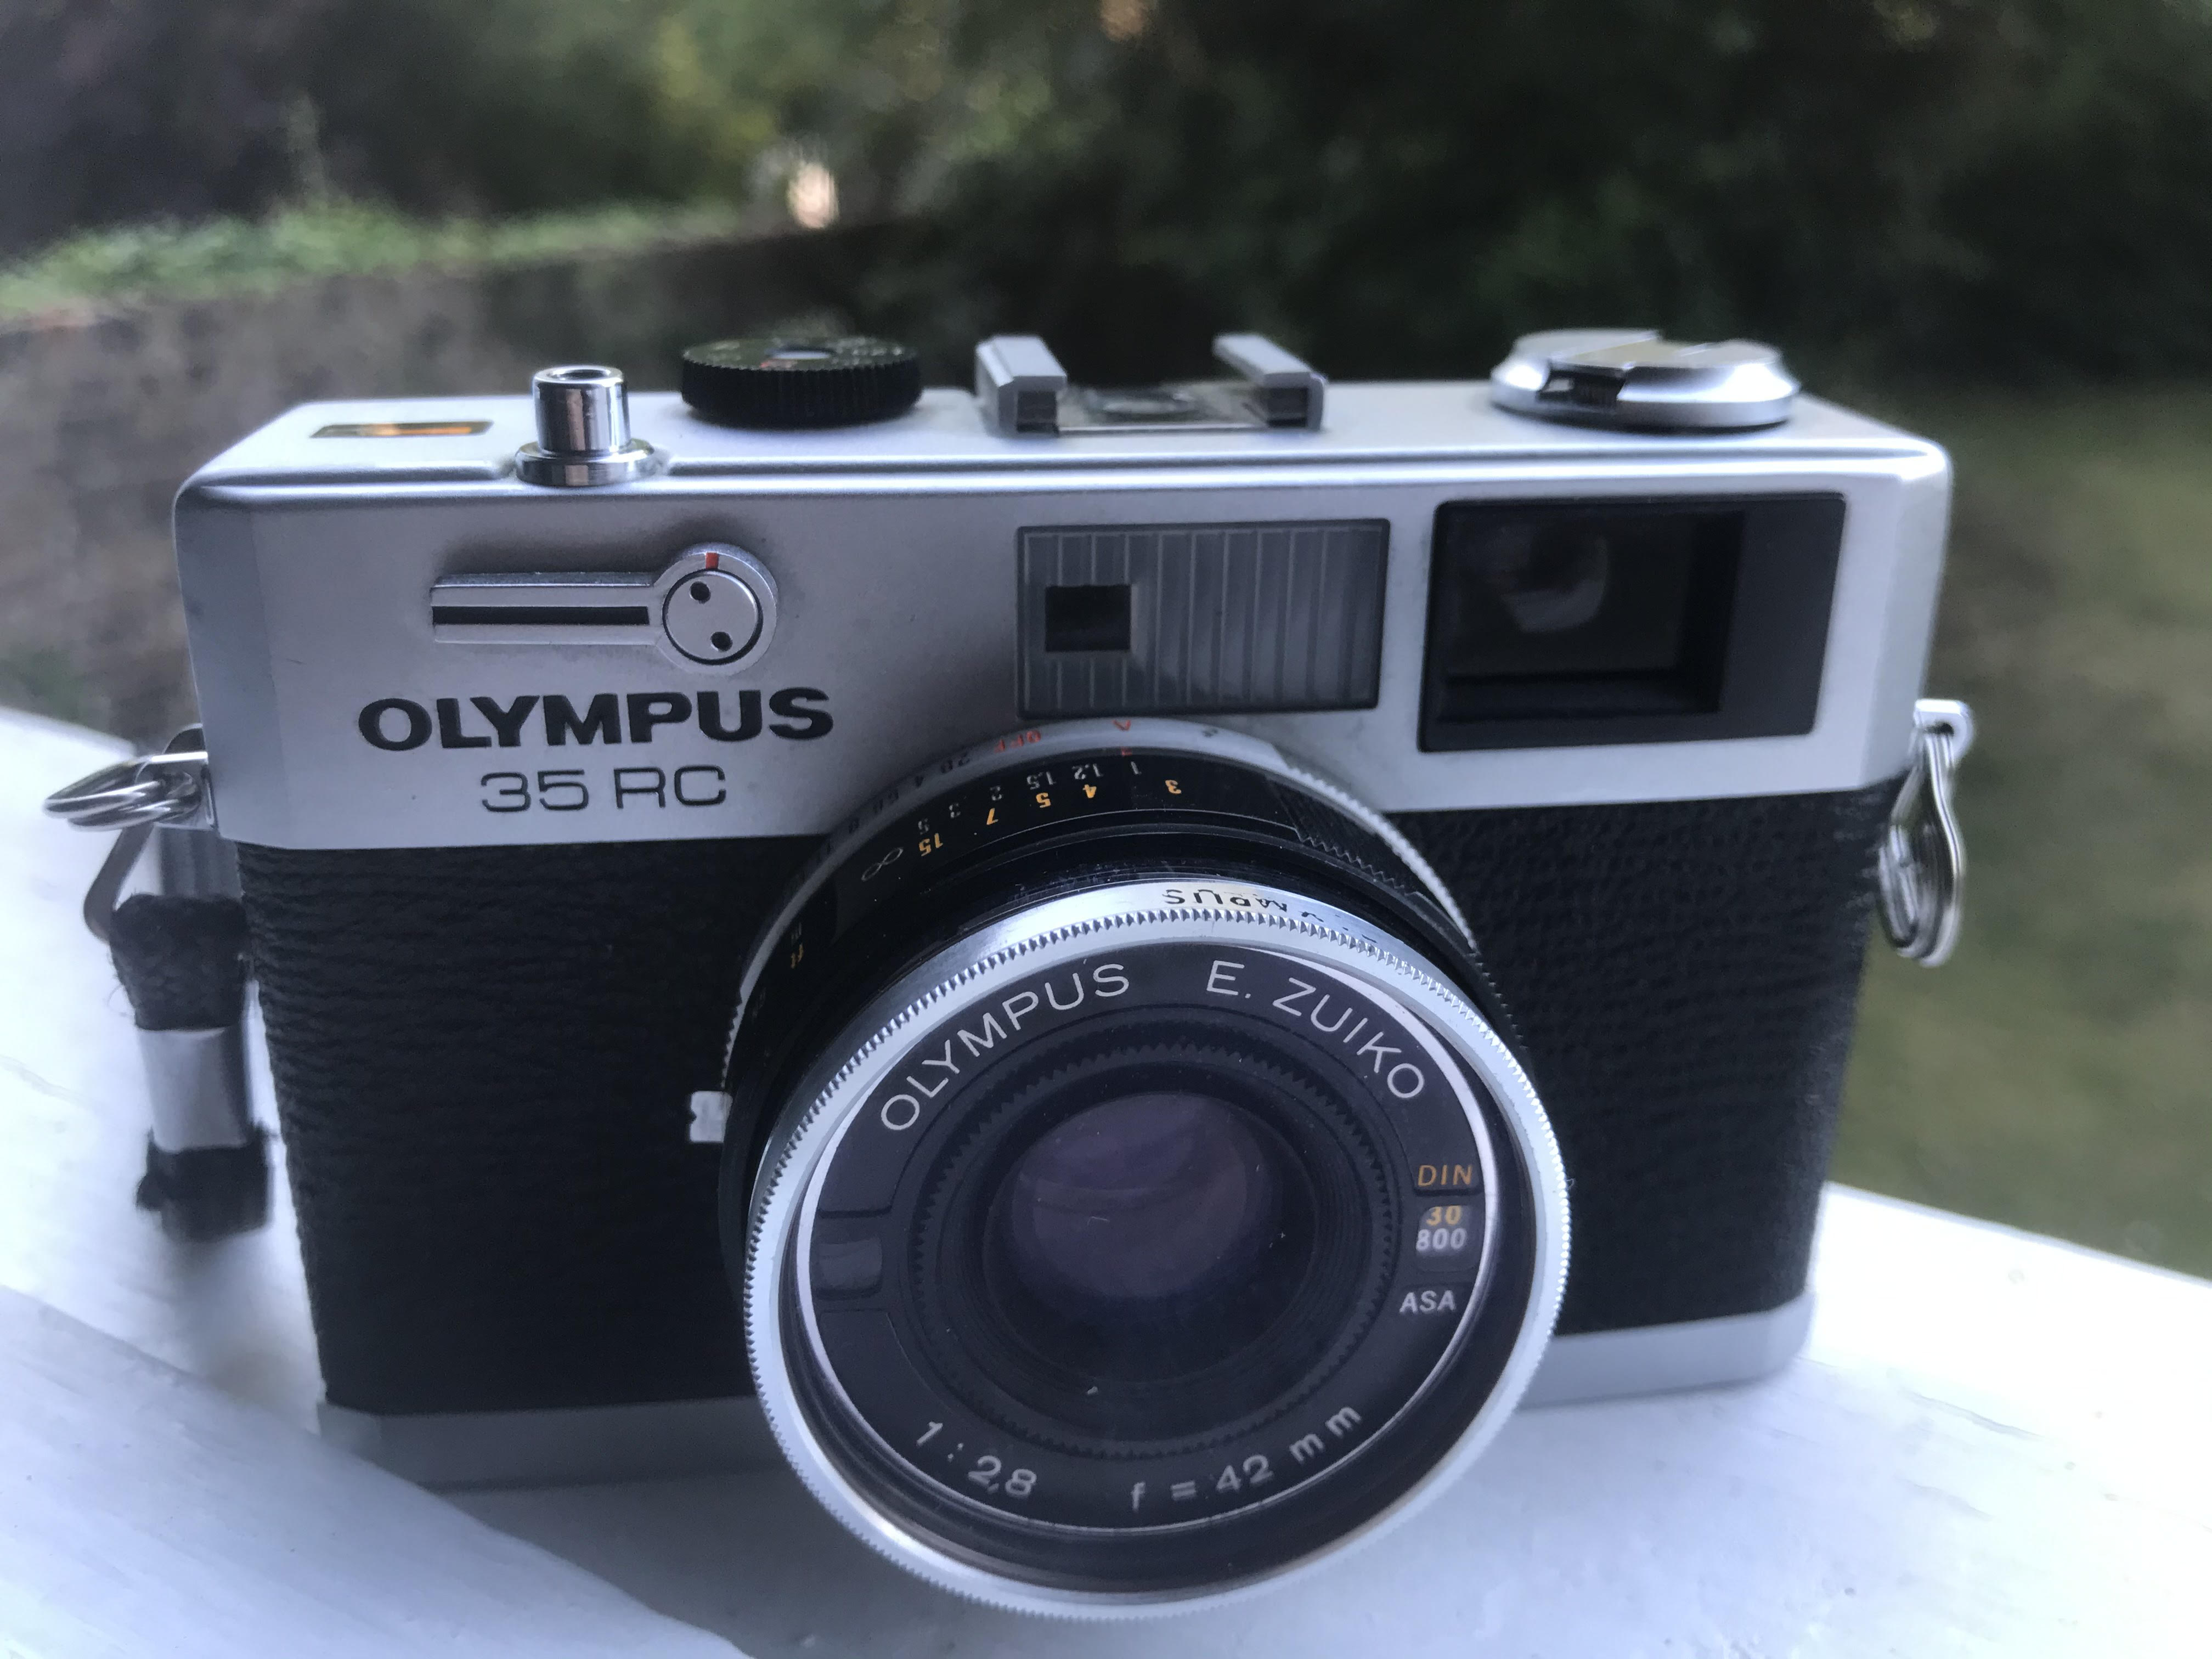 Olympus 35RC (Pic: Stephen Dowling)